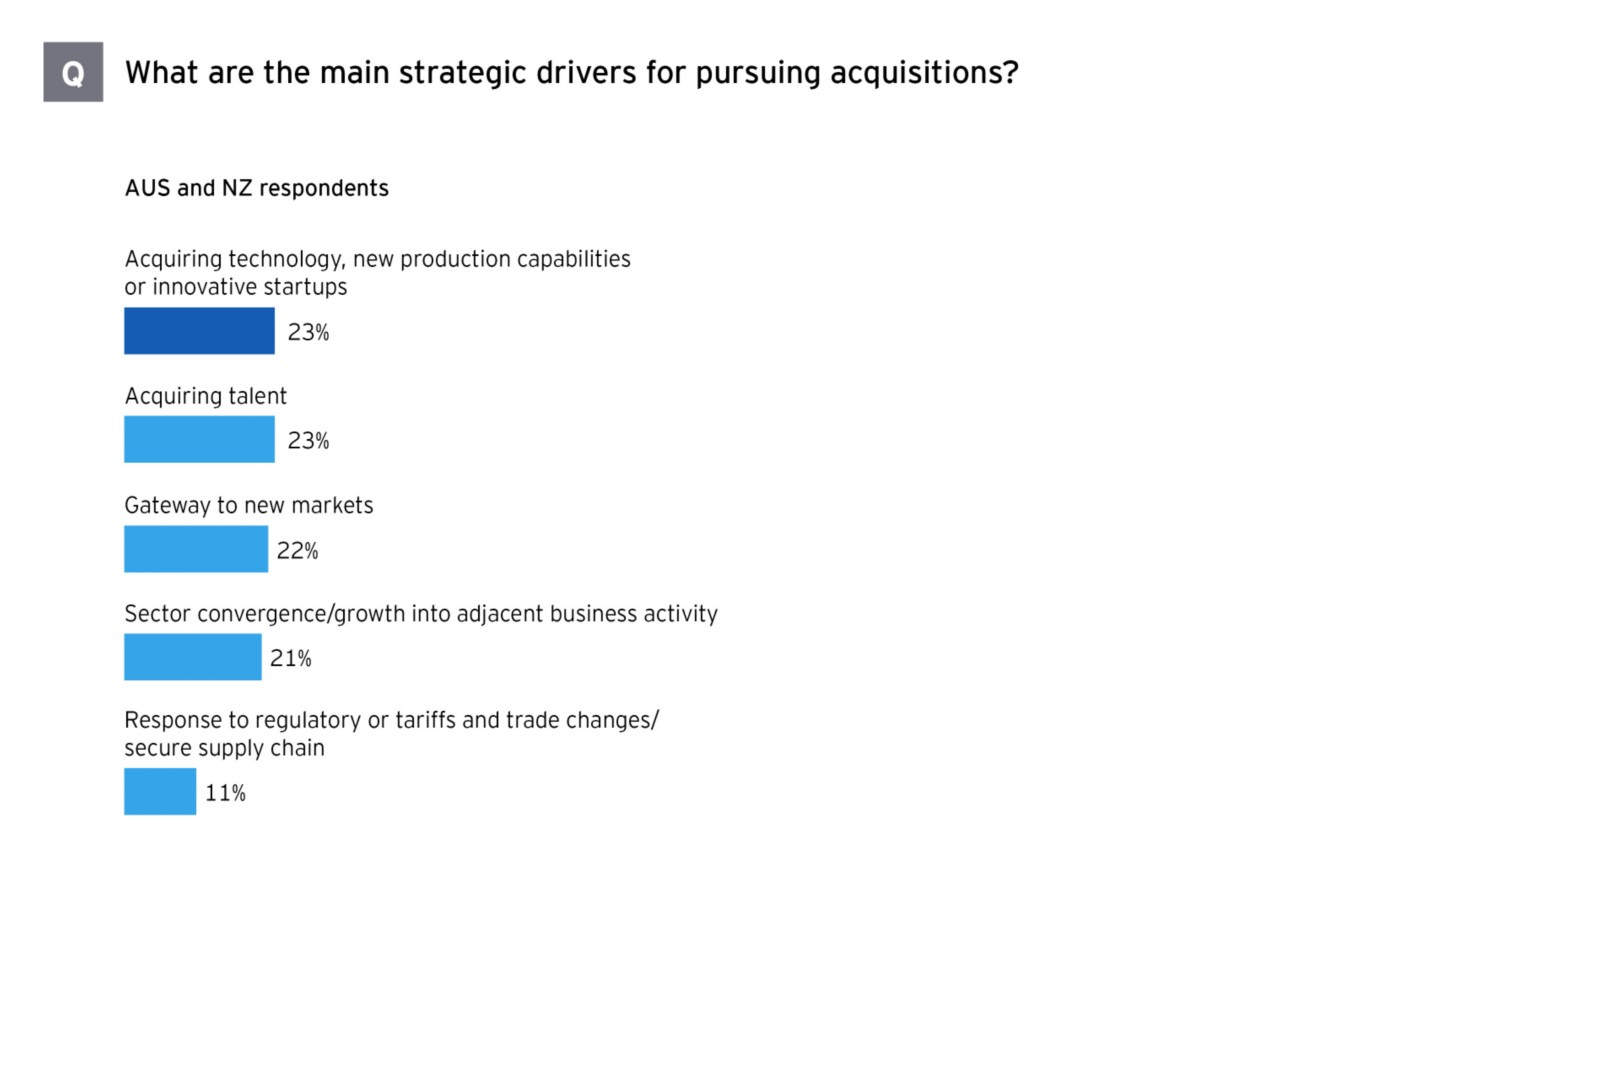 M&A survey Australasia strategic drivers for pursuing acquisitions graph